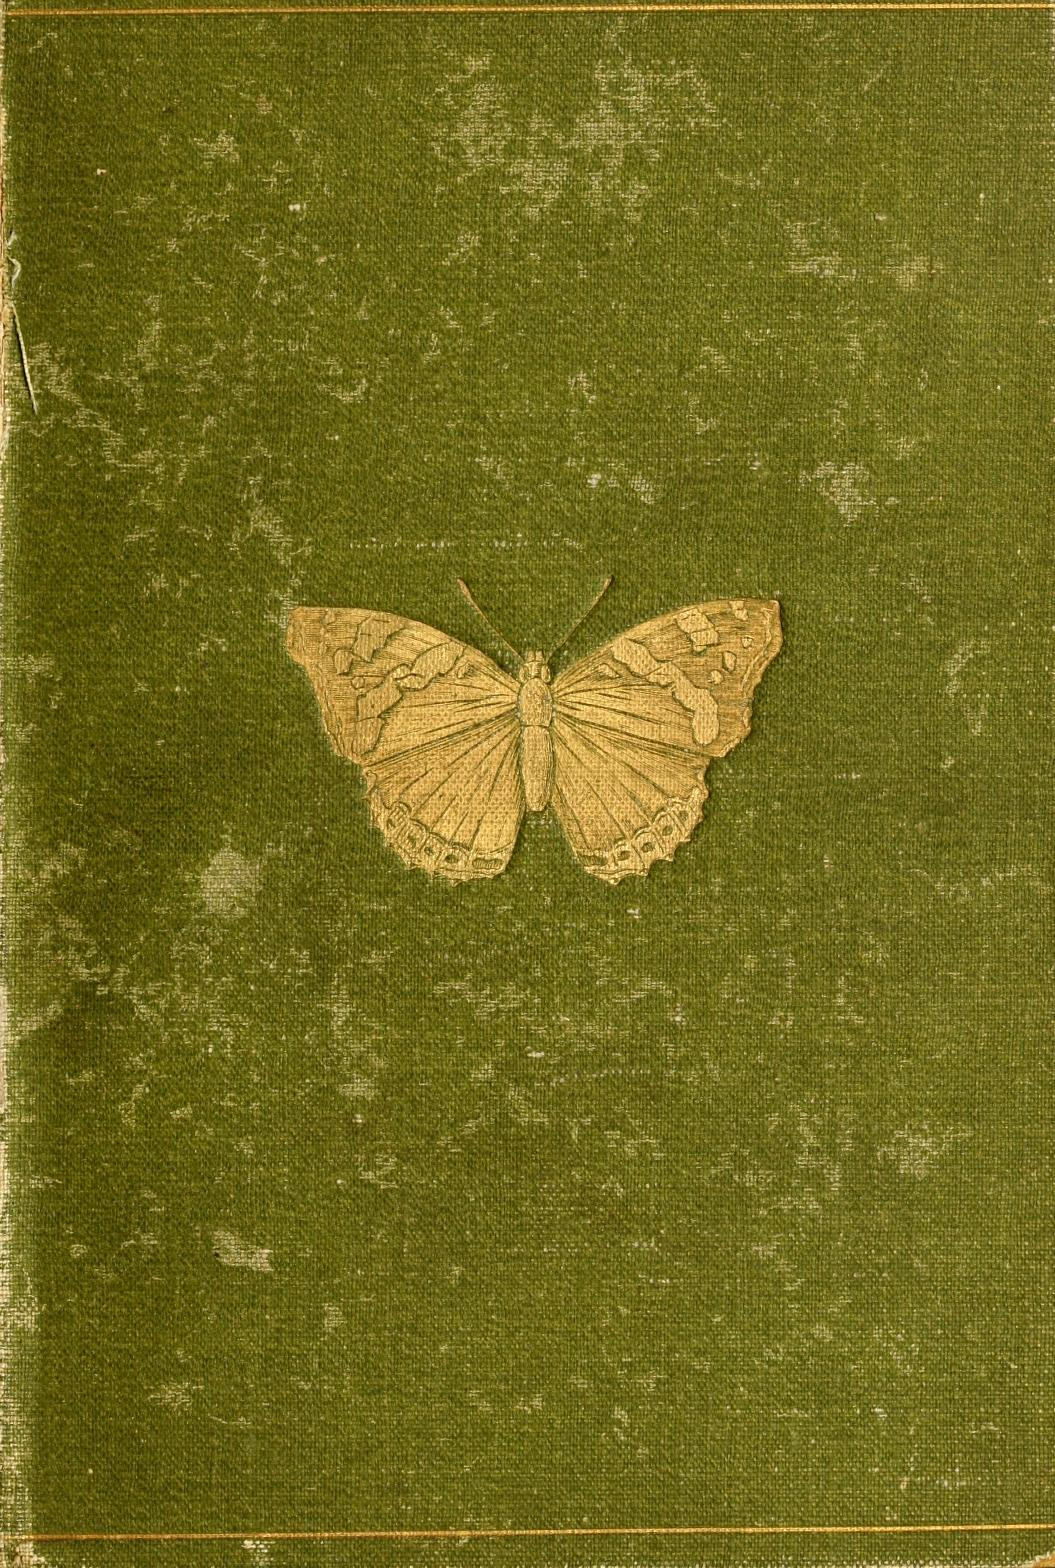 heaveninawildflower: Butterflies and Moths (British) by W. Furneaux                 Published 1894 by Longmans, Green, and Co. archive.org